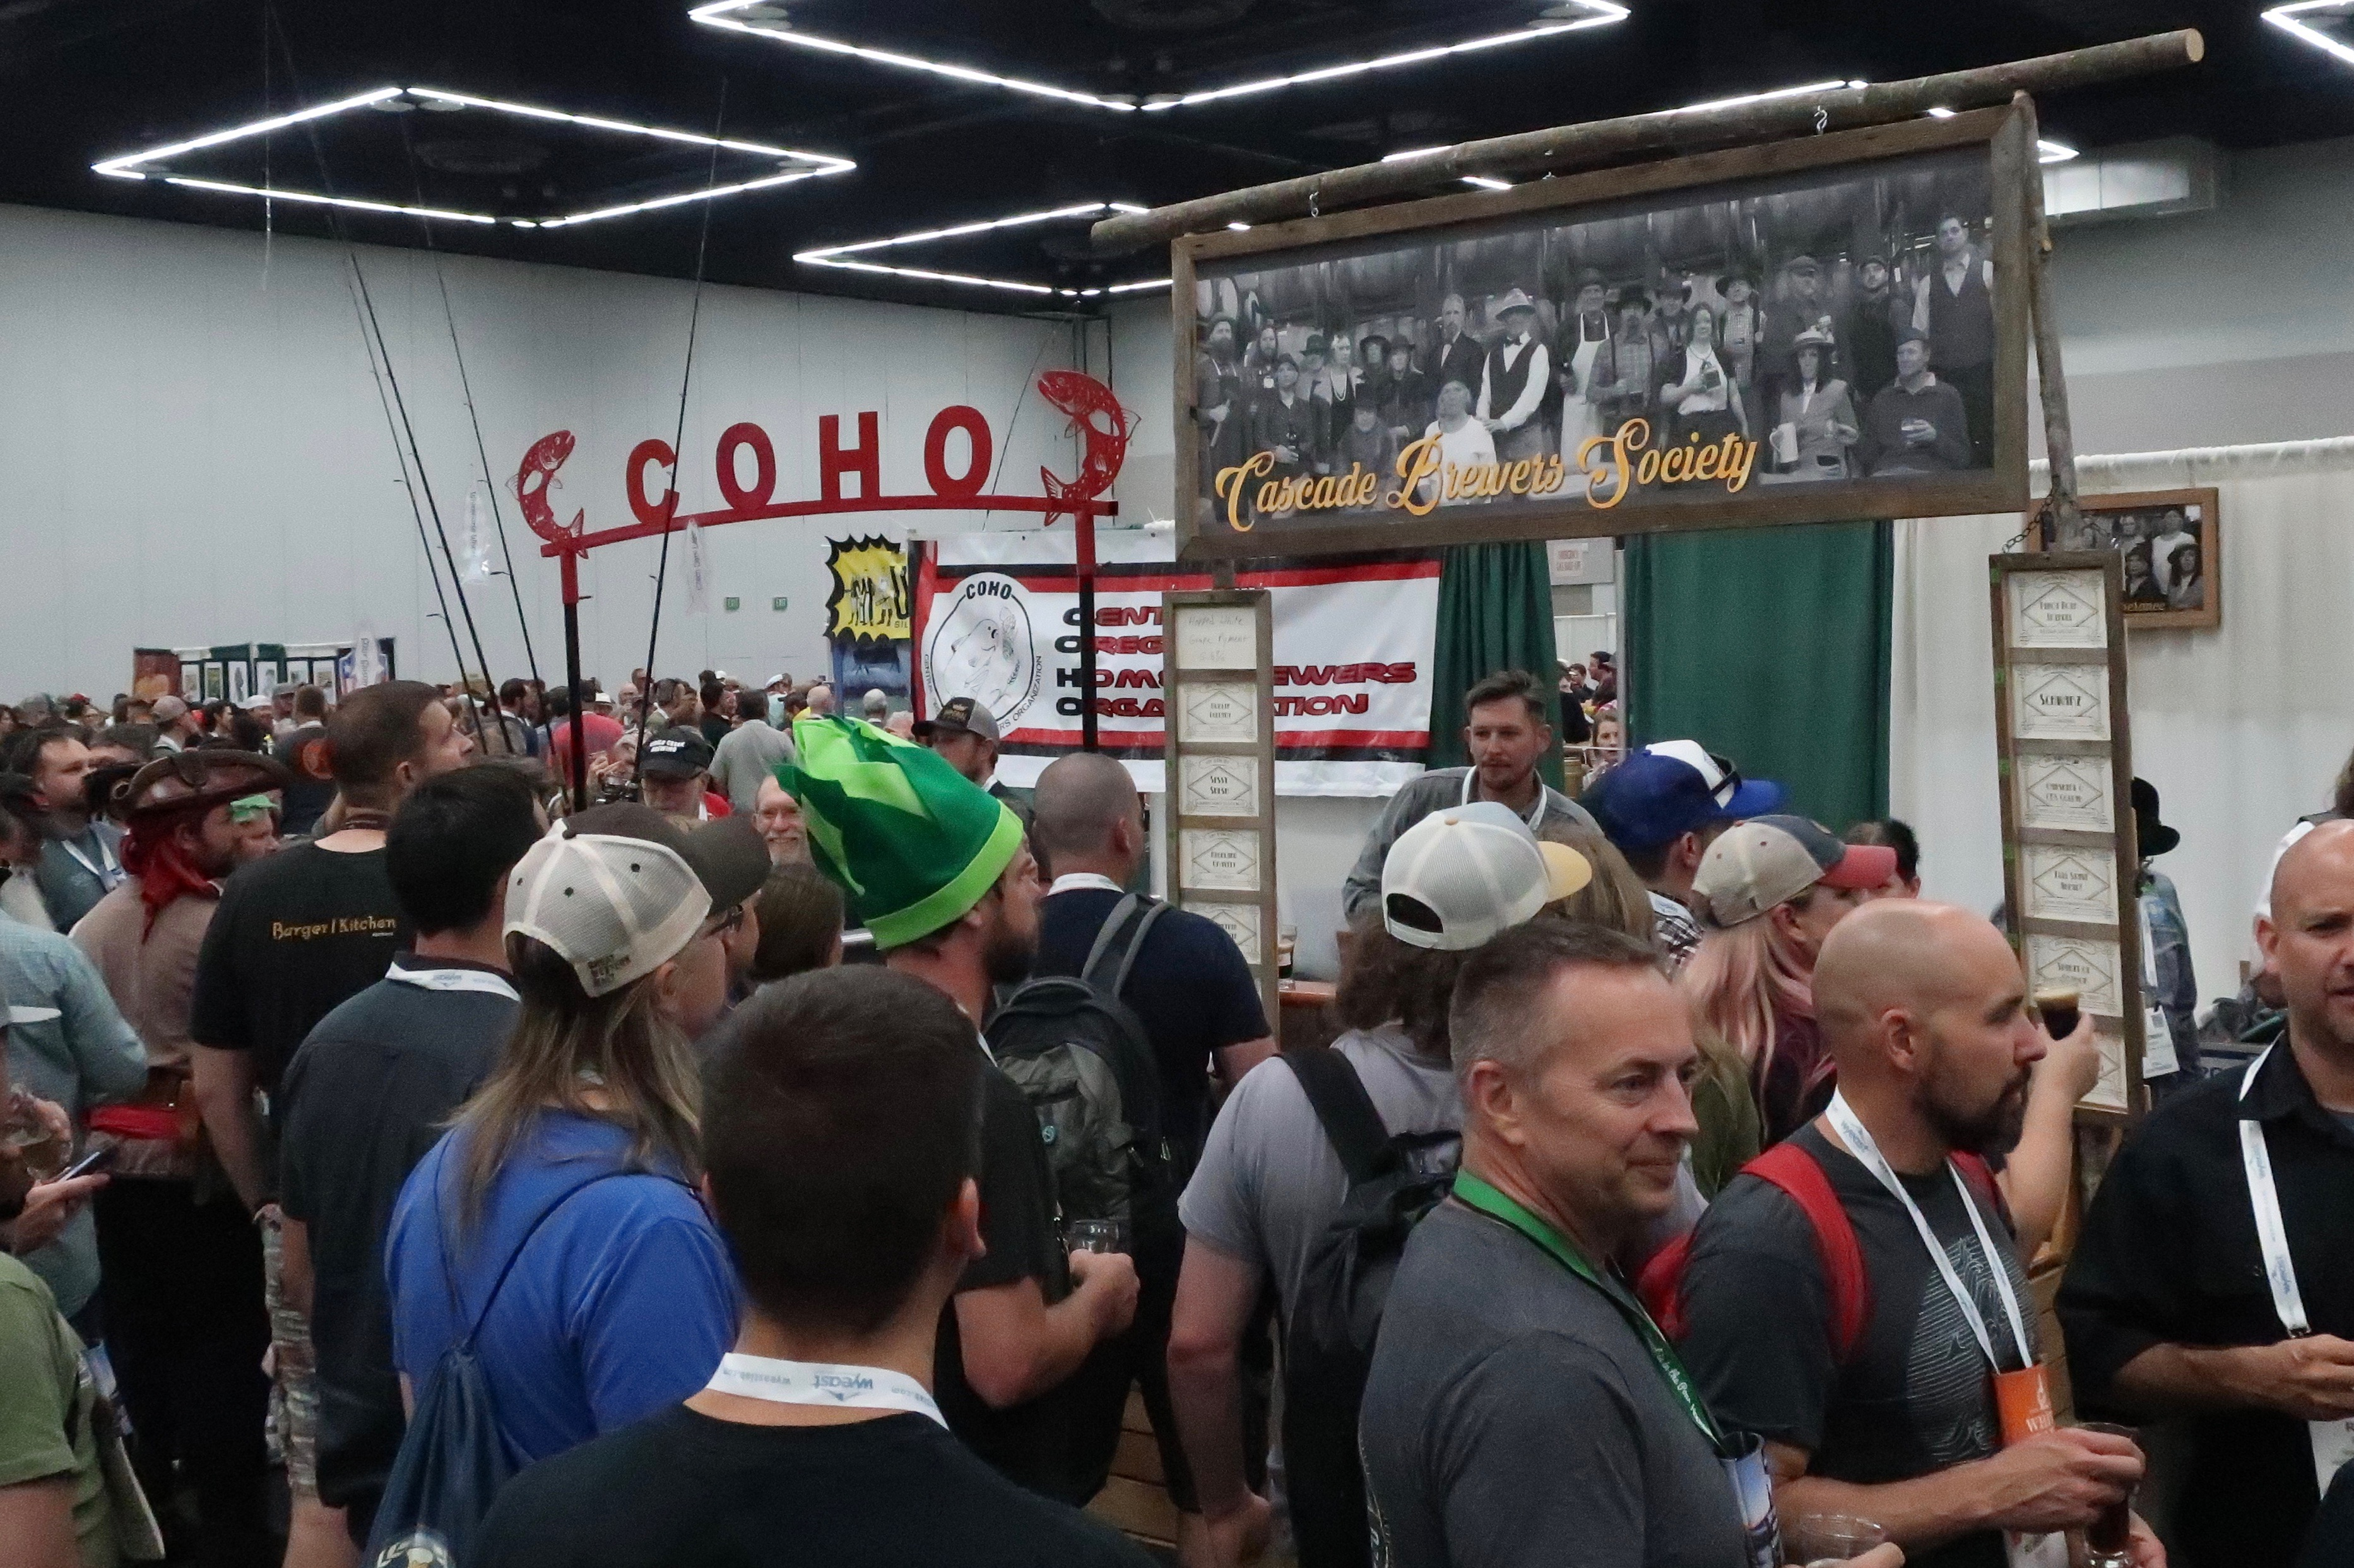 COHO and Cascade Brewers Society during Club Night at Homebrew Con 2018.